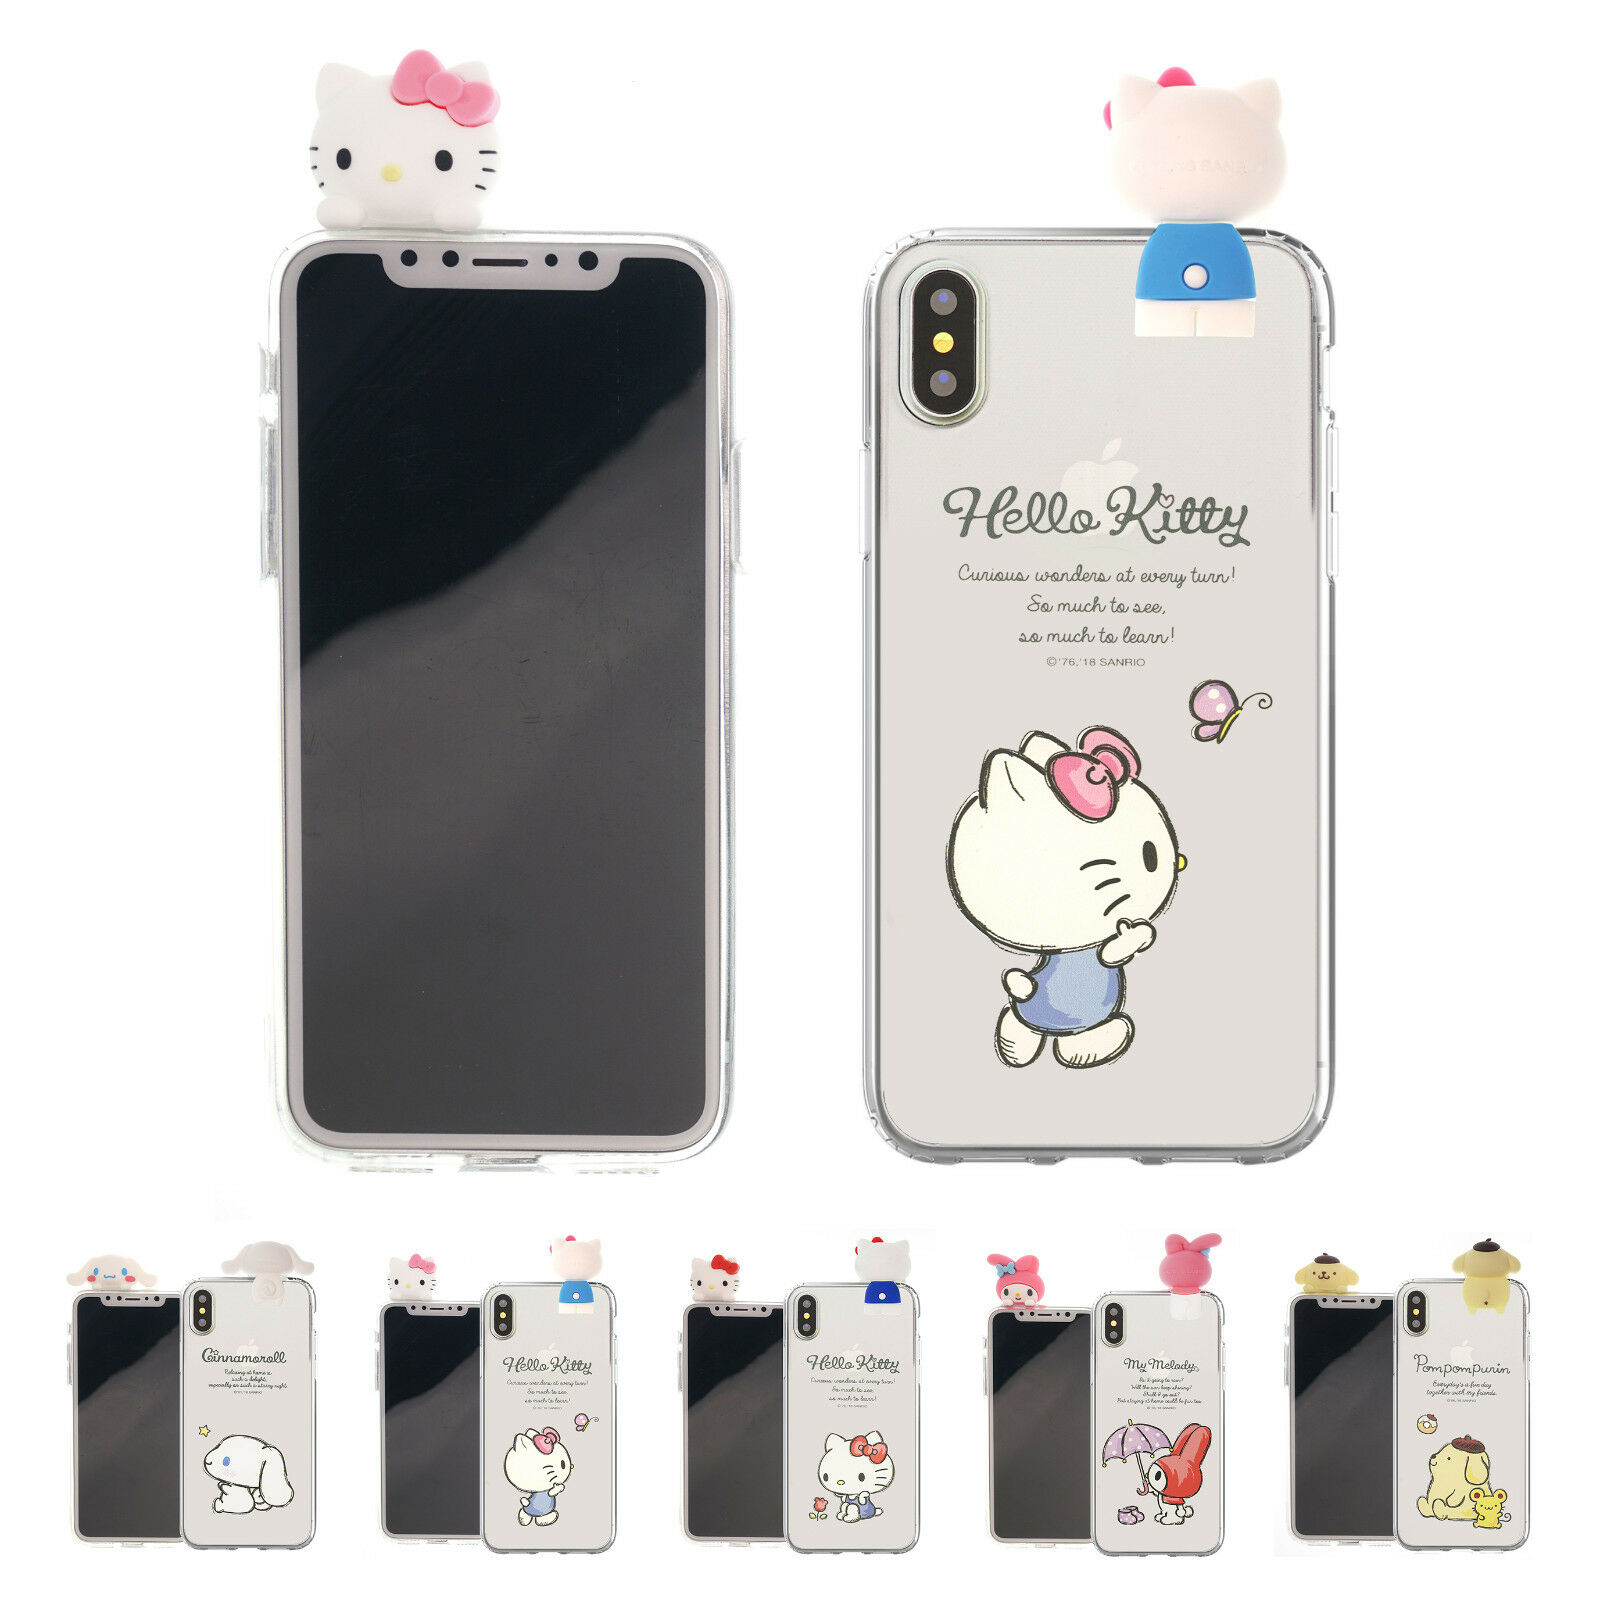 Sanrio Figure Jelly Cover Galaxy S9 Note9 Iphone Xs Max Xr X 8 7 Goospery Samsung New Bumper Case Black 1 Of 1free Shipping